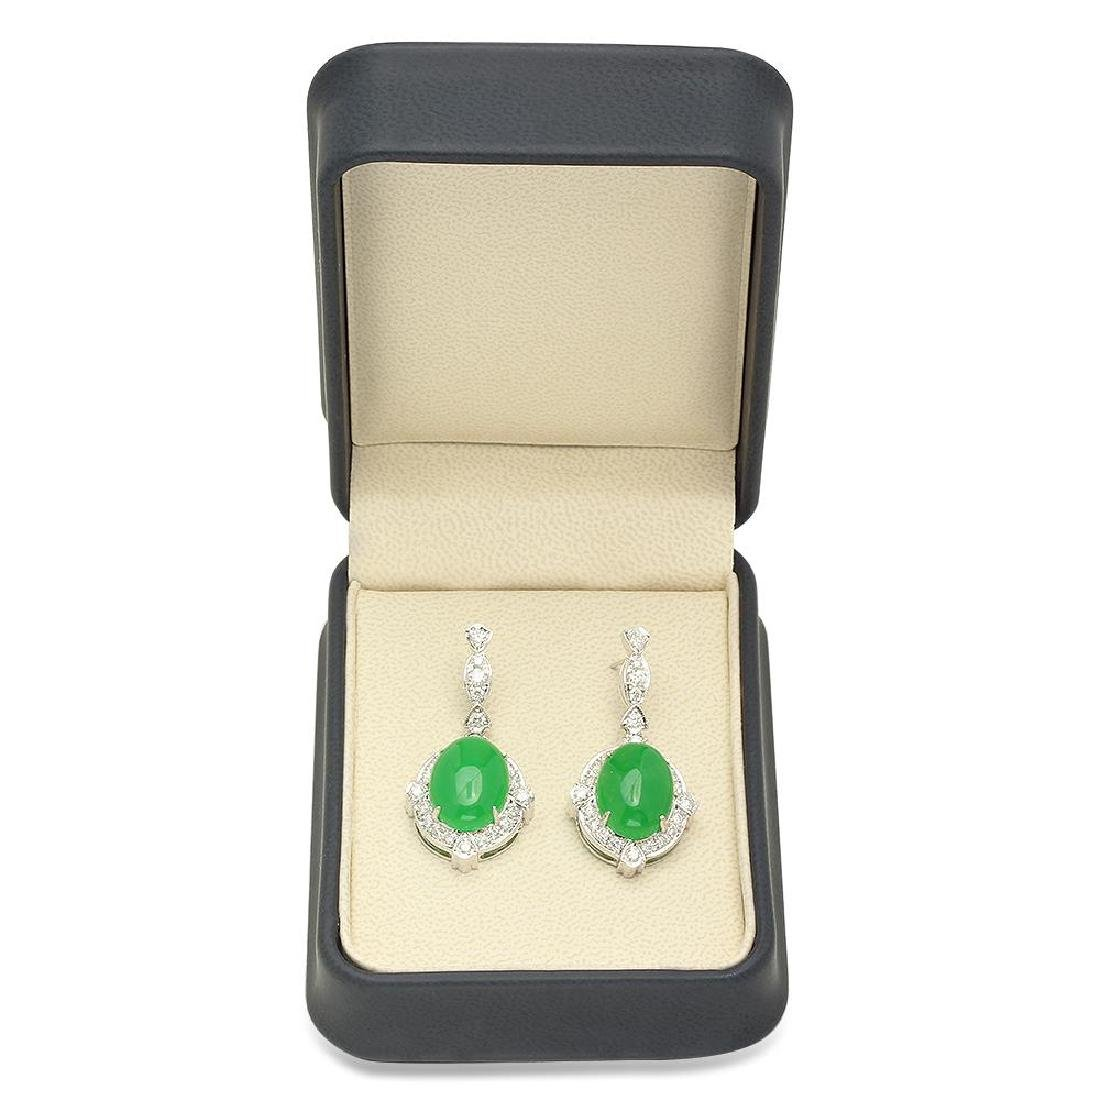 14K Gold 17.86ct Jadeite 1.92cts Diamond Earrings - 3